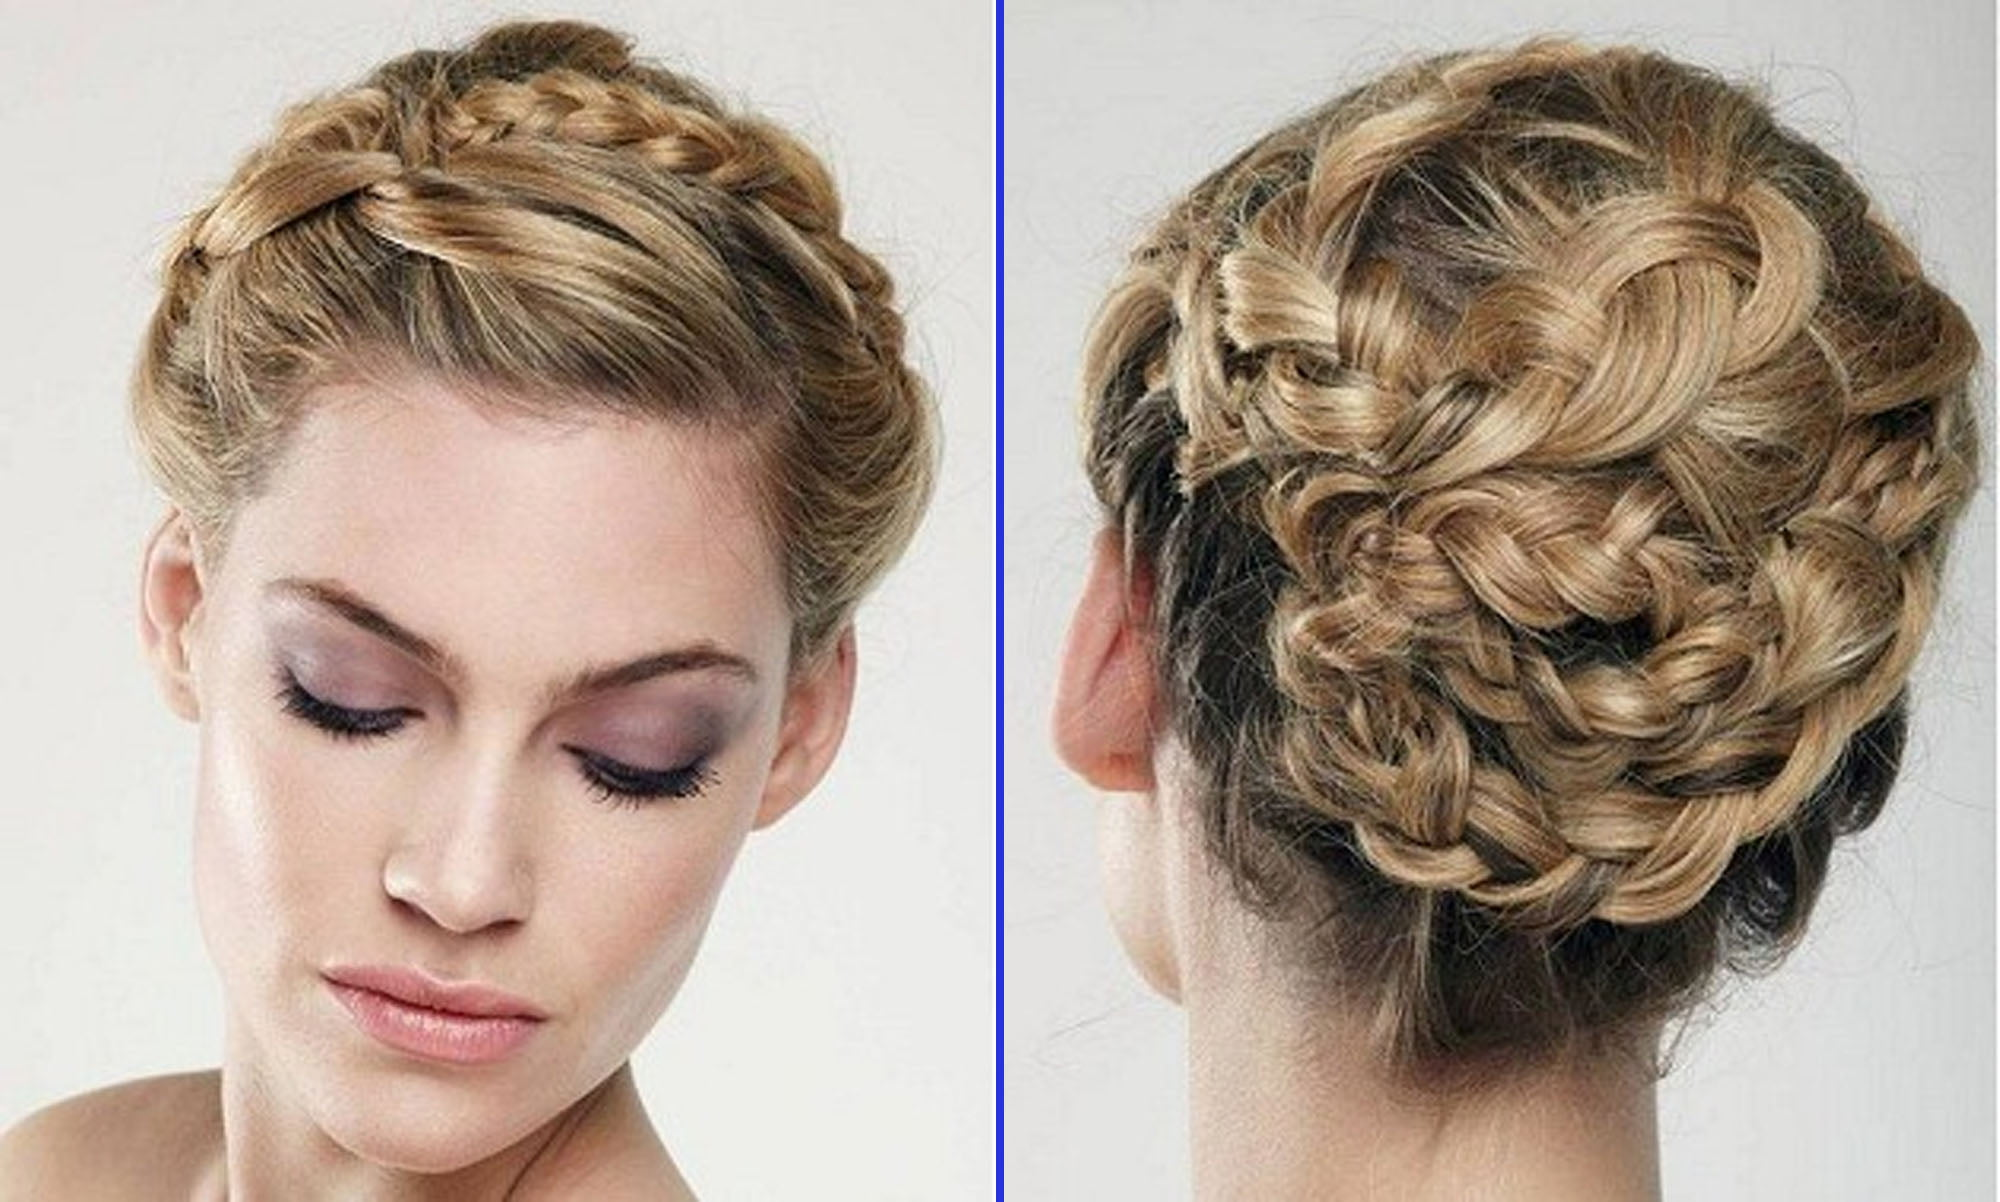 Braided images 2017 for blonde women